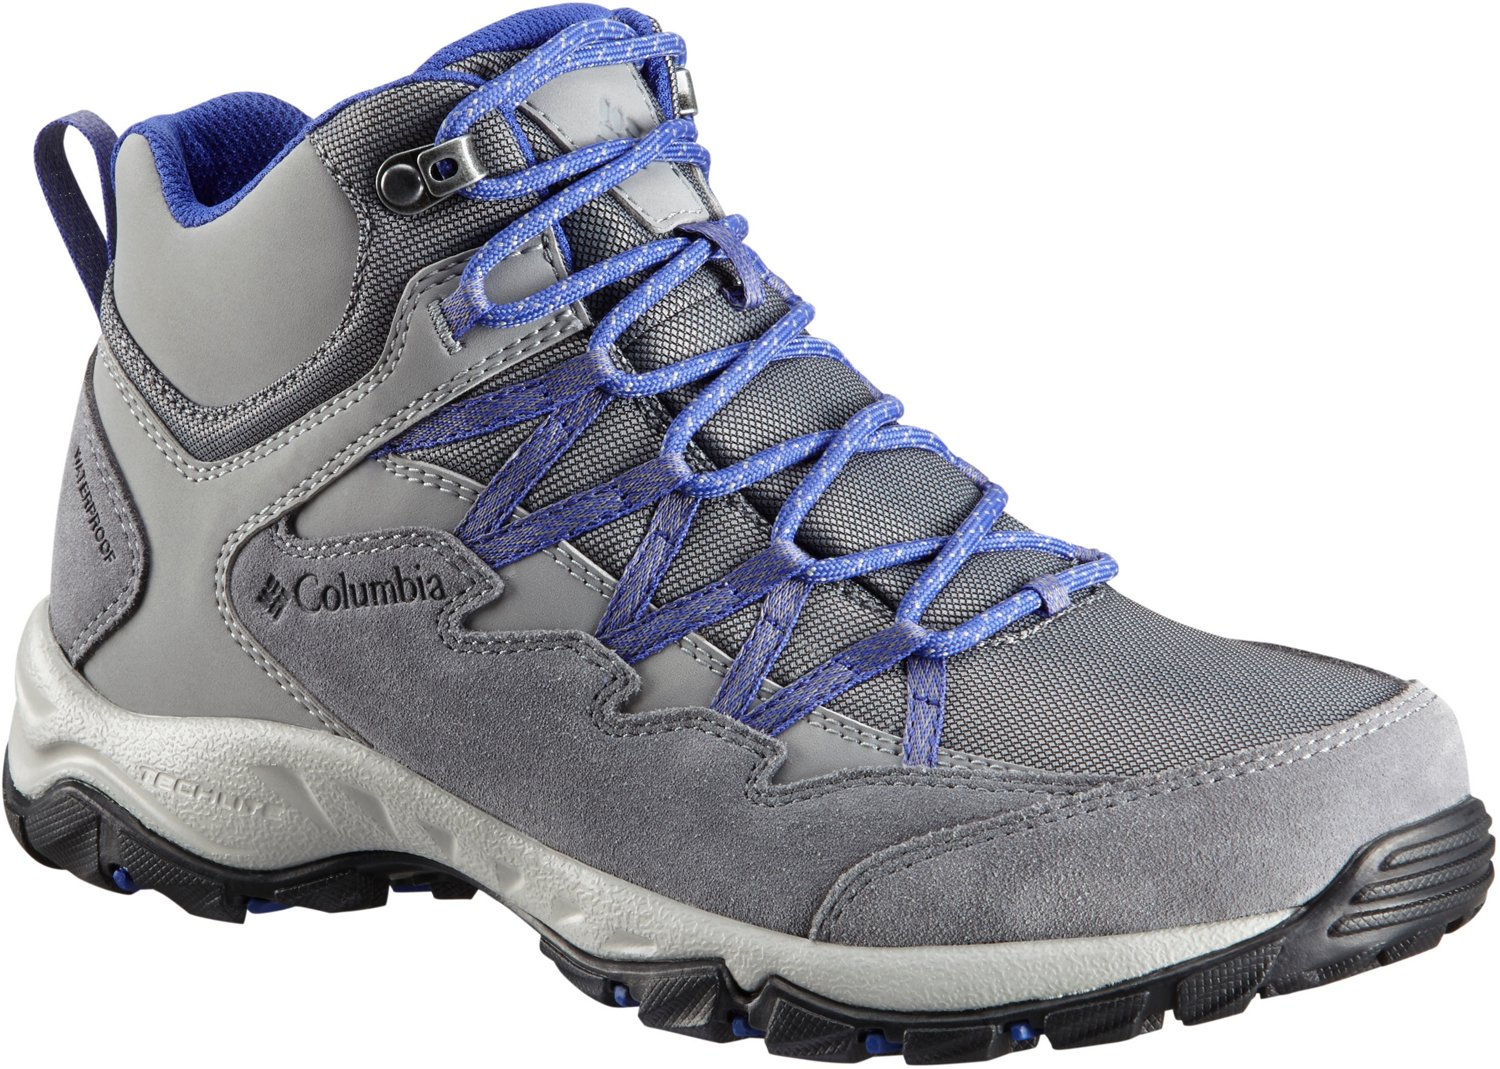 5a5c233341c Display product reviews for Columbia Sportswear Women s Wahkeena Mid Waterproof  Hiking Shoes